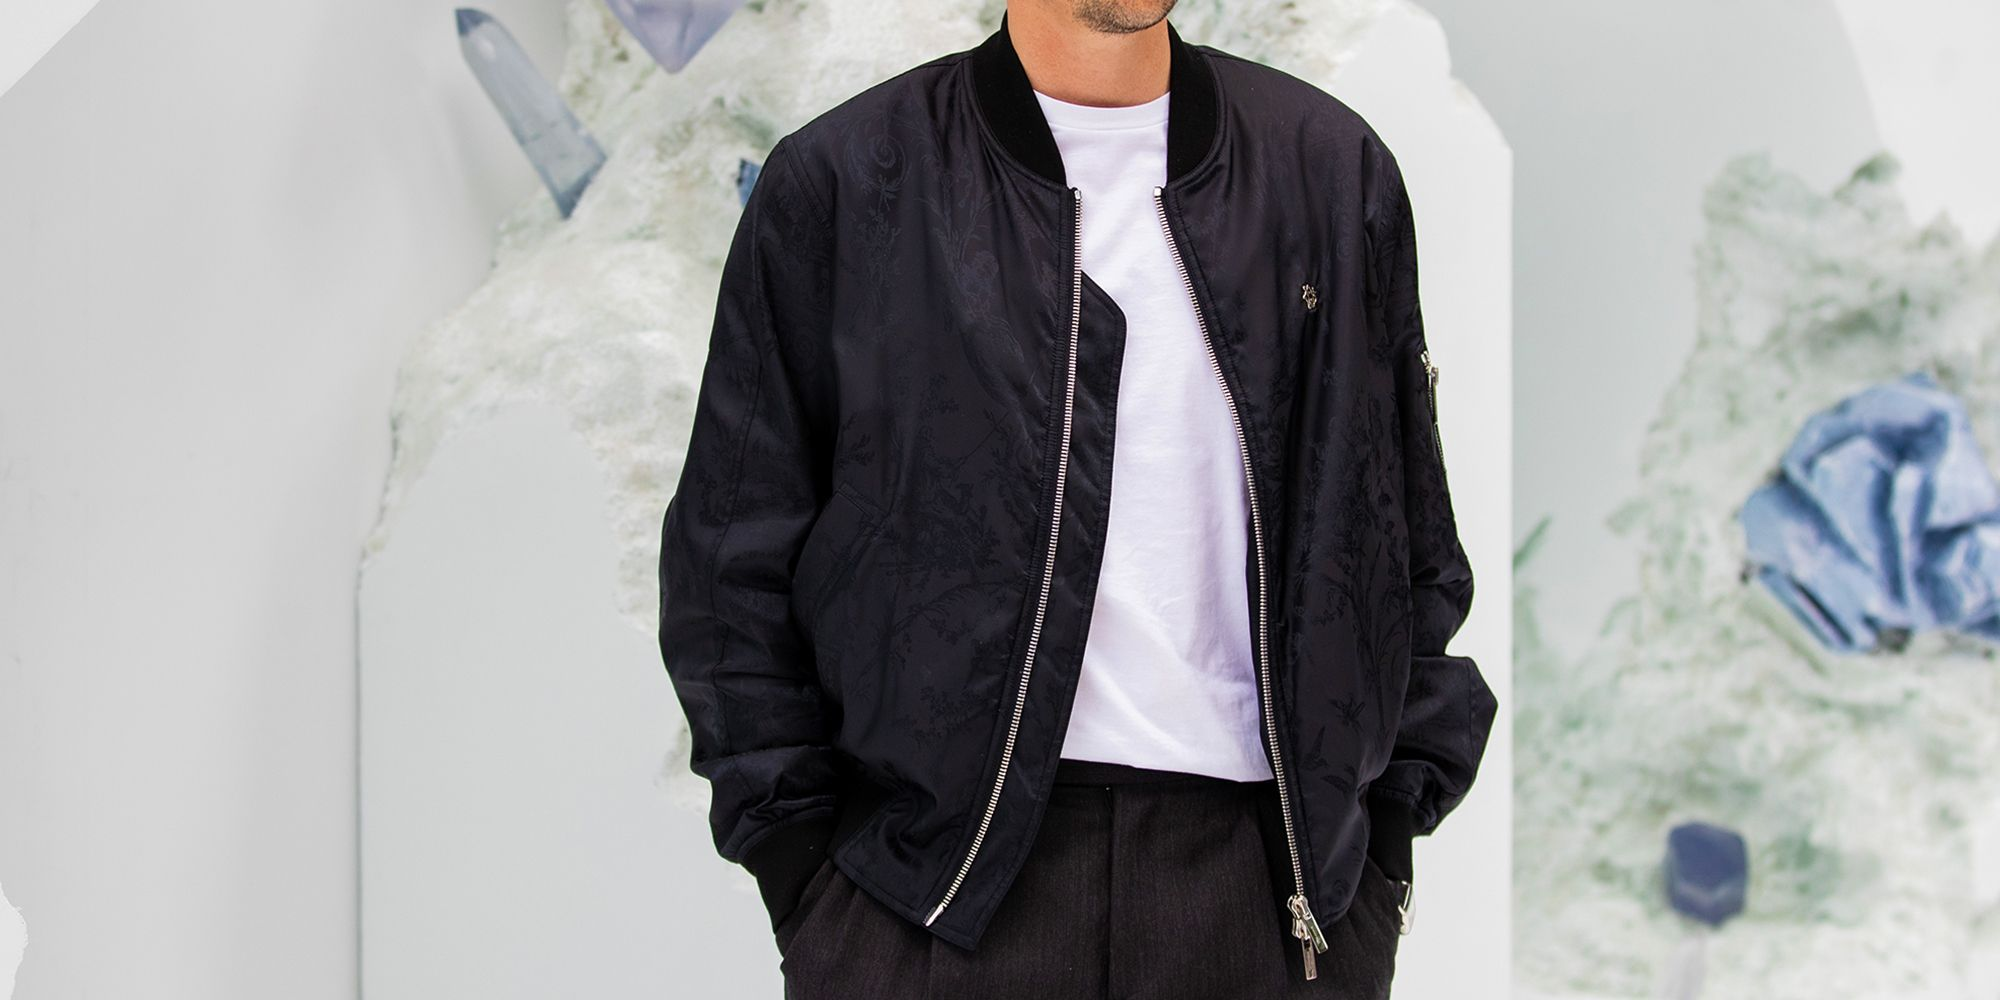 The 11 Best Bomber Jackets to Buy Now and Wear With Everything